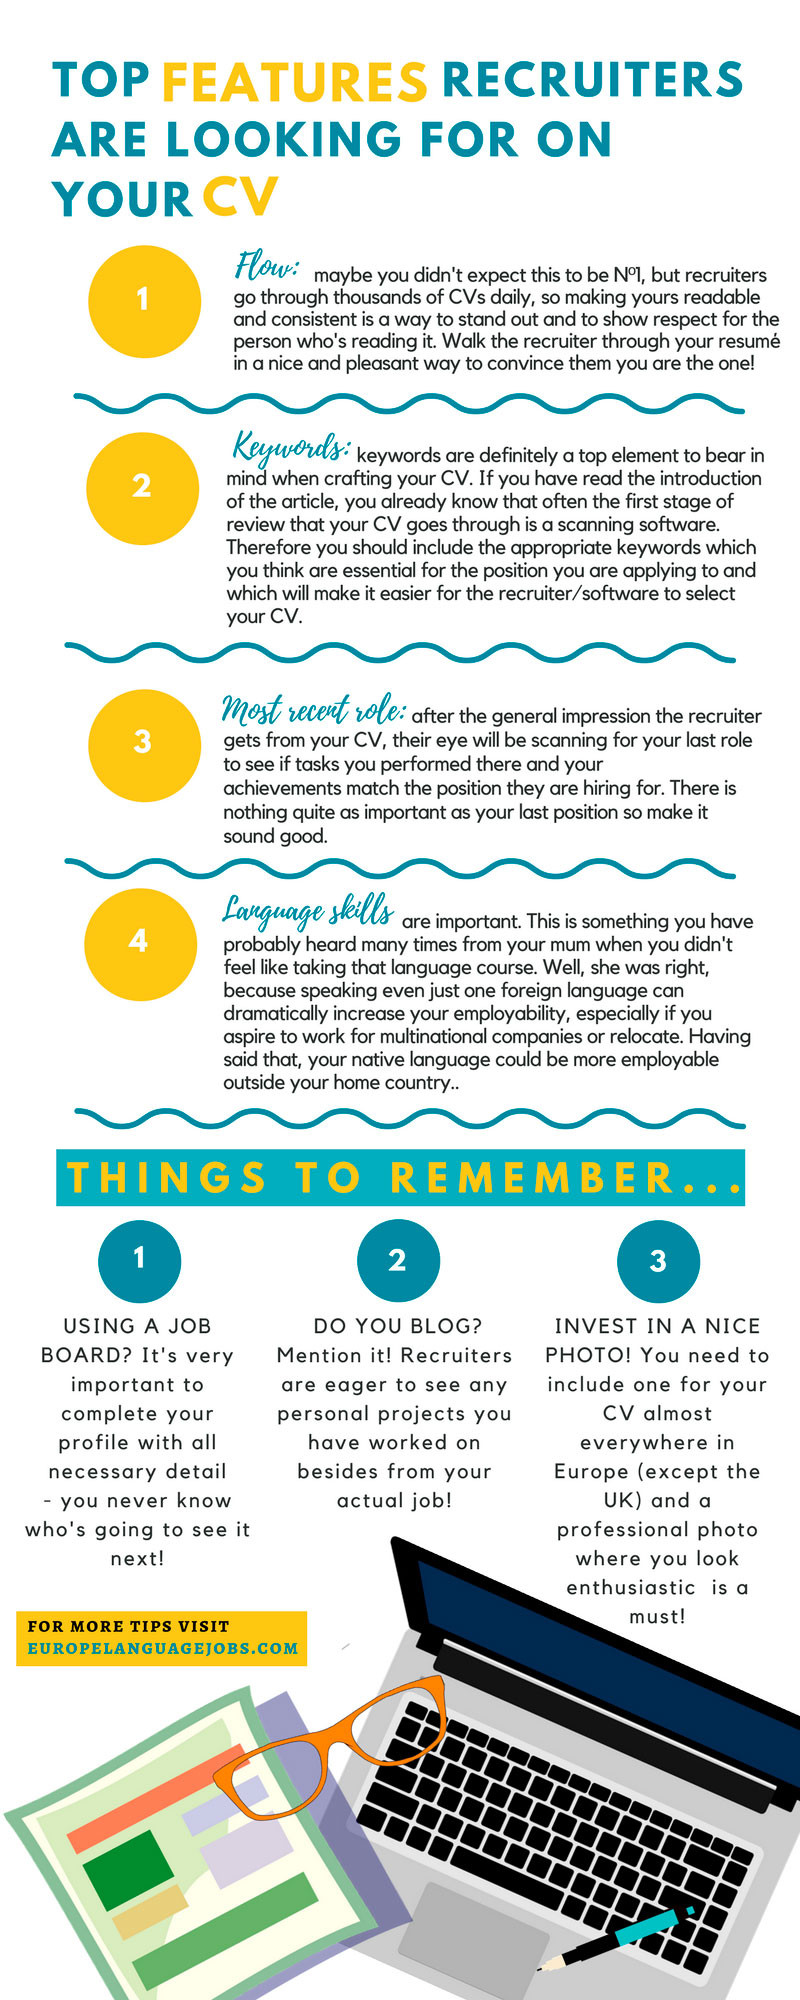 Did You Like This Infographic And Want To Use It? Feel Free!